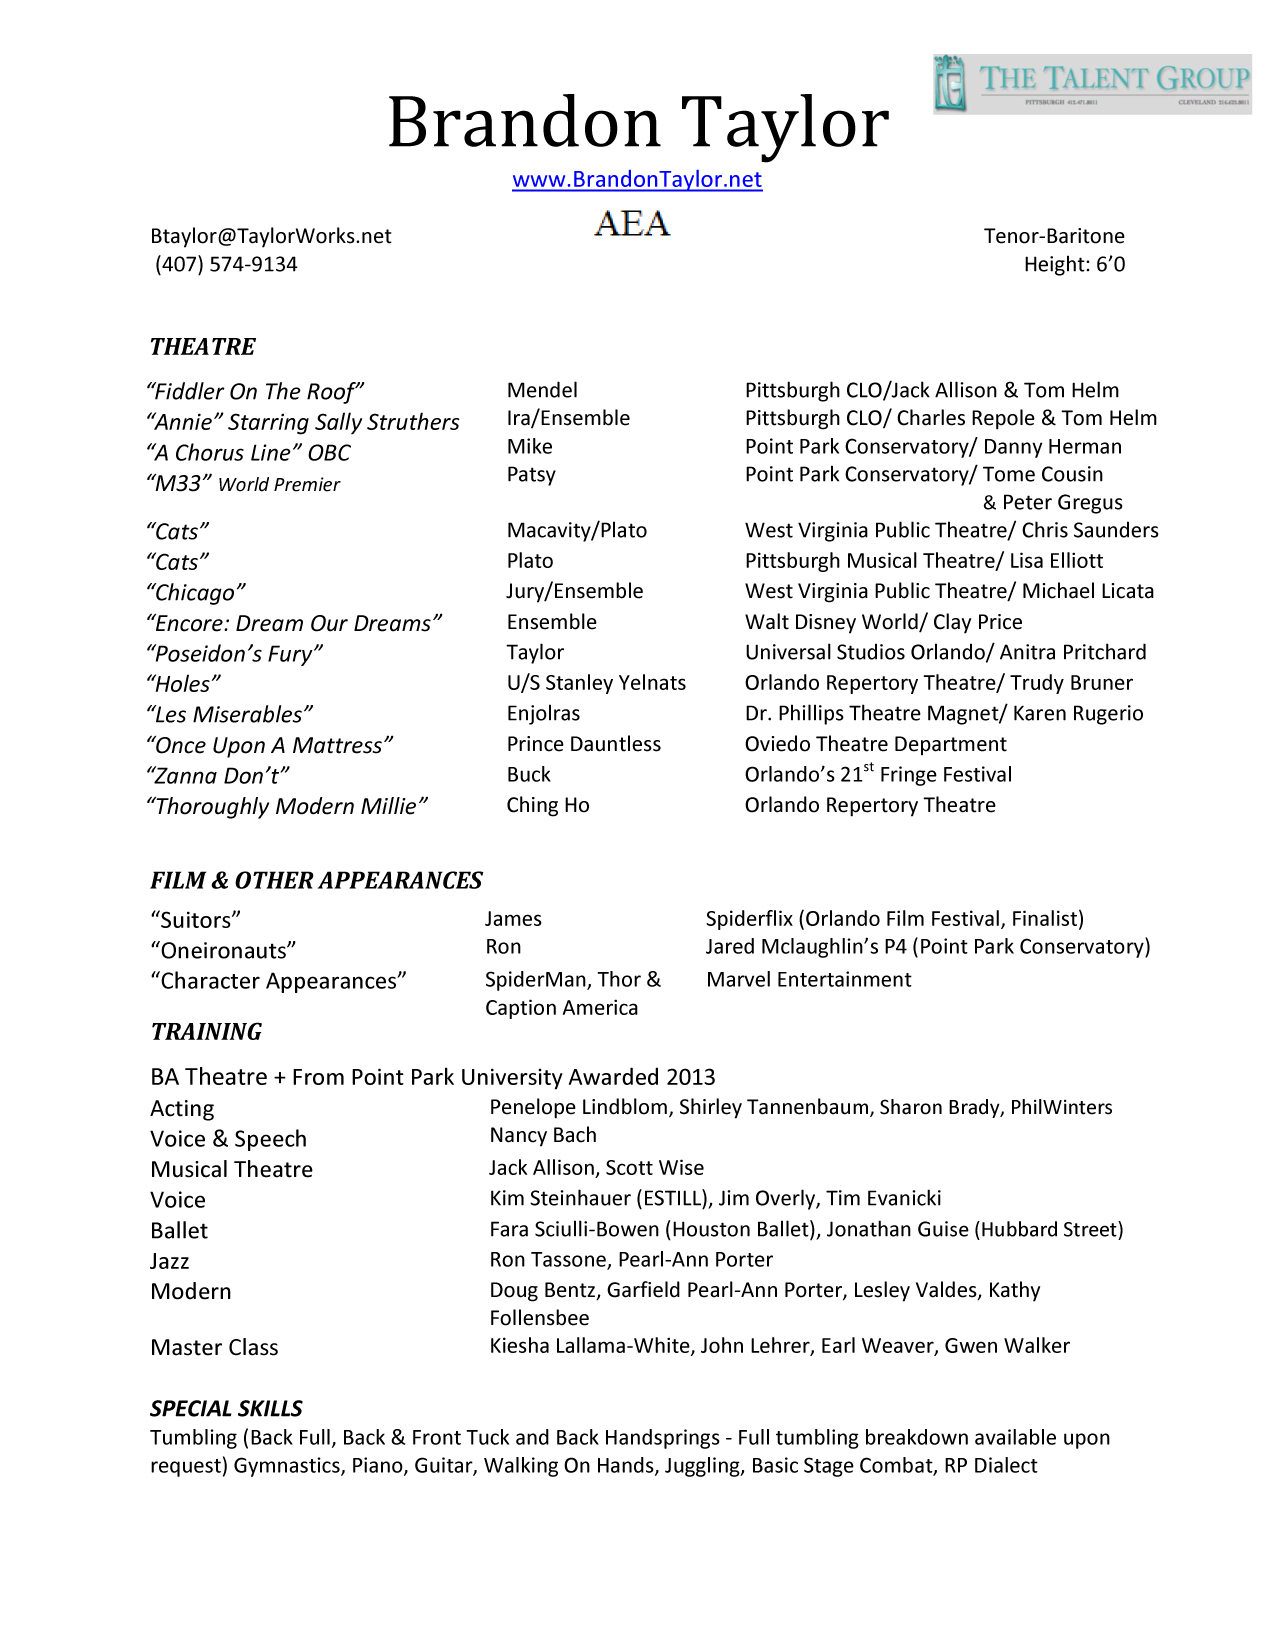 Resume Format For Film Industry Resume Maker Create